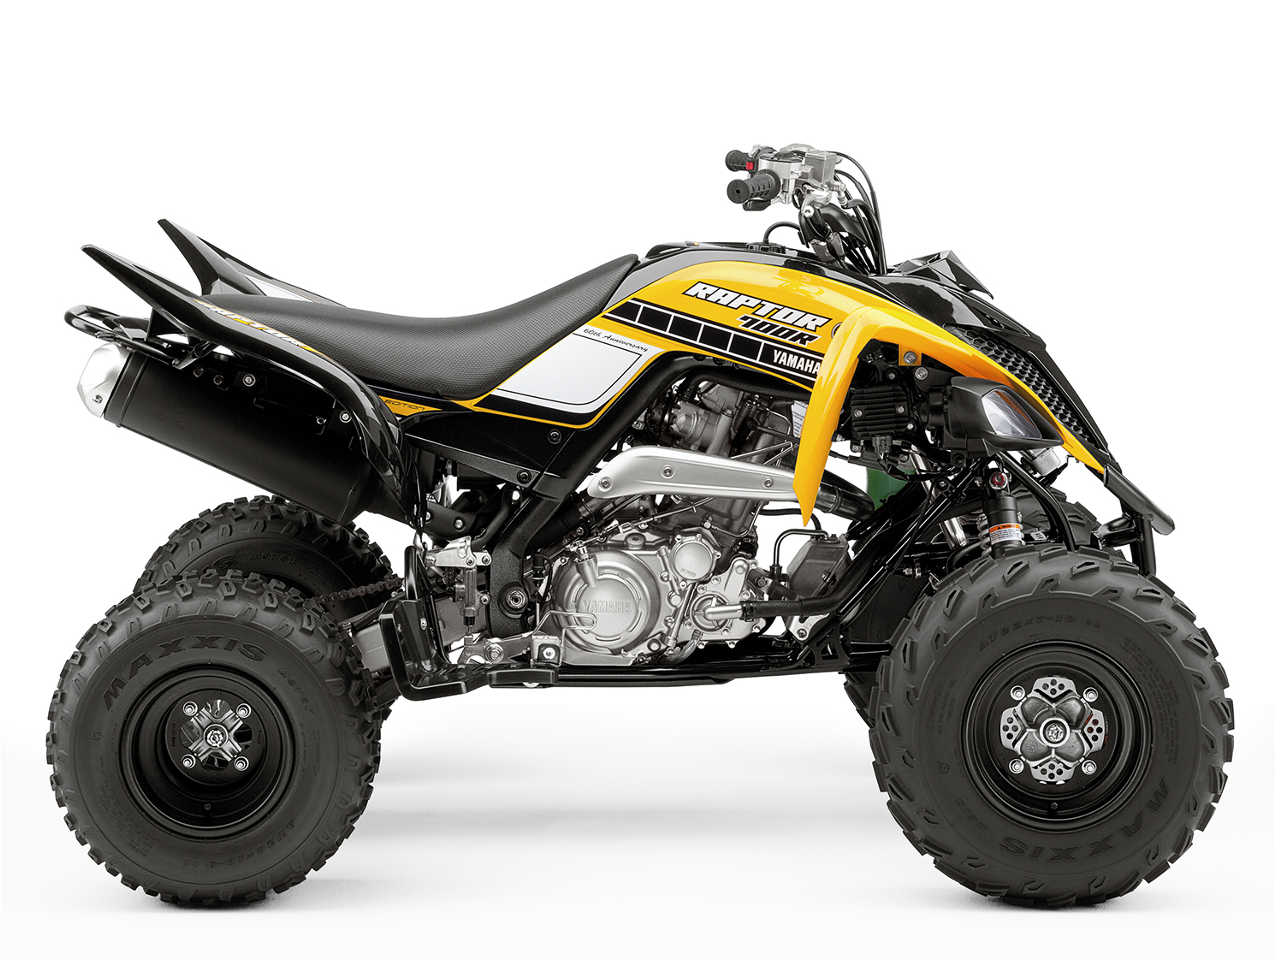 2016 new 60th anniversary special edition raptor 700r and yfz450r sport atvs atv illustrated. Black Bedroom Furniture Sets. Home Design Ideas